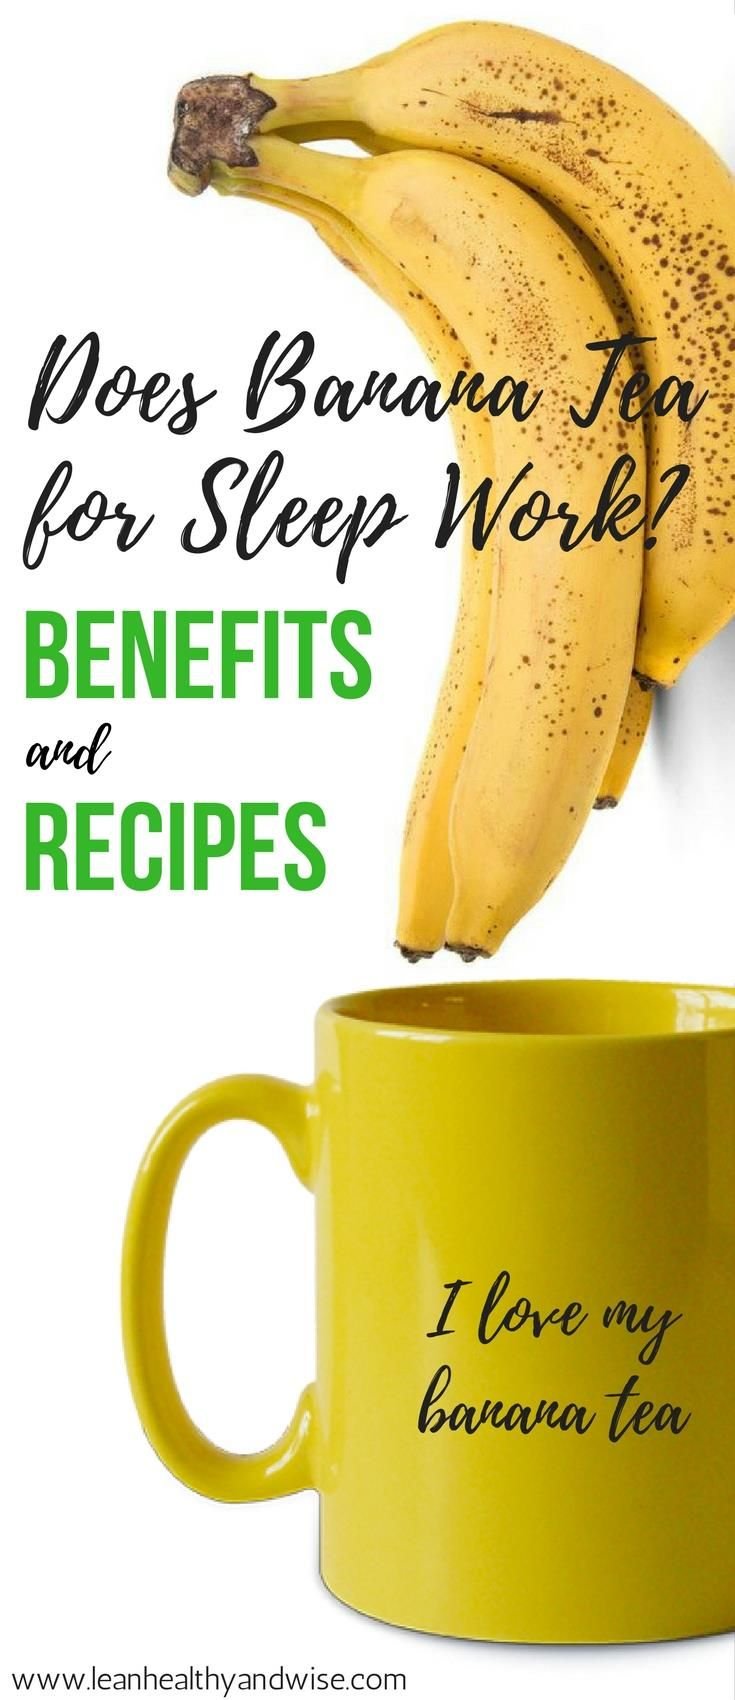 Did you know that banana tea will help you sleep? If you suffer from insomnia banana tea is great for sleeplessness. Dr Oz and Rachel Ray approved recipes. via @leanhealthywise